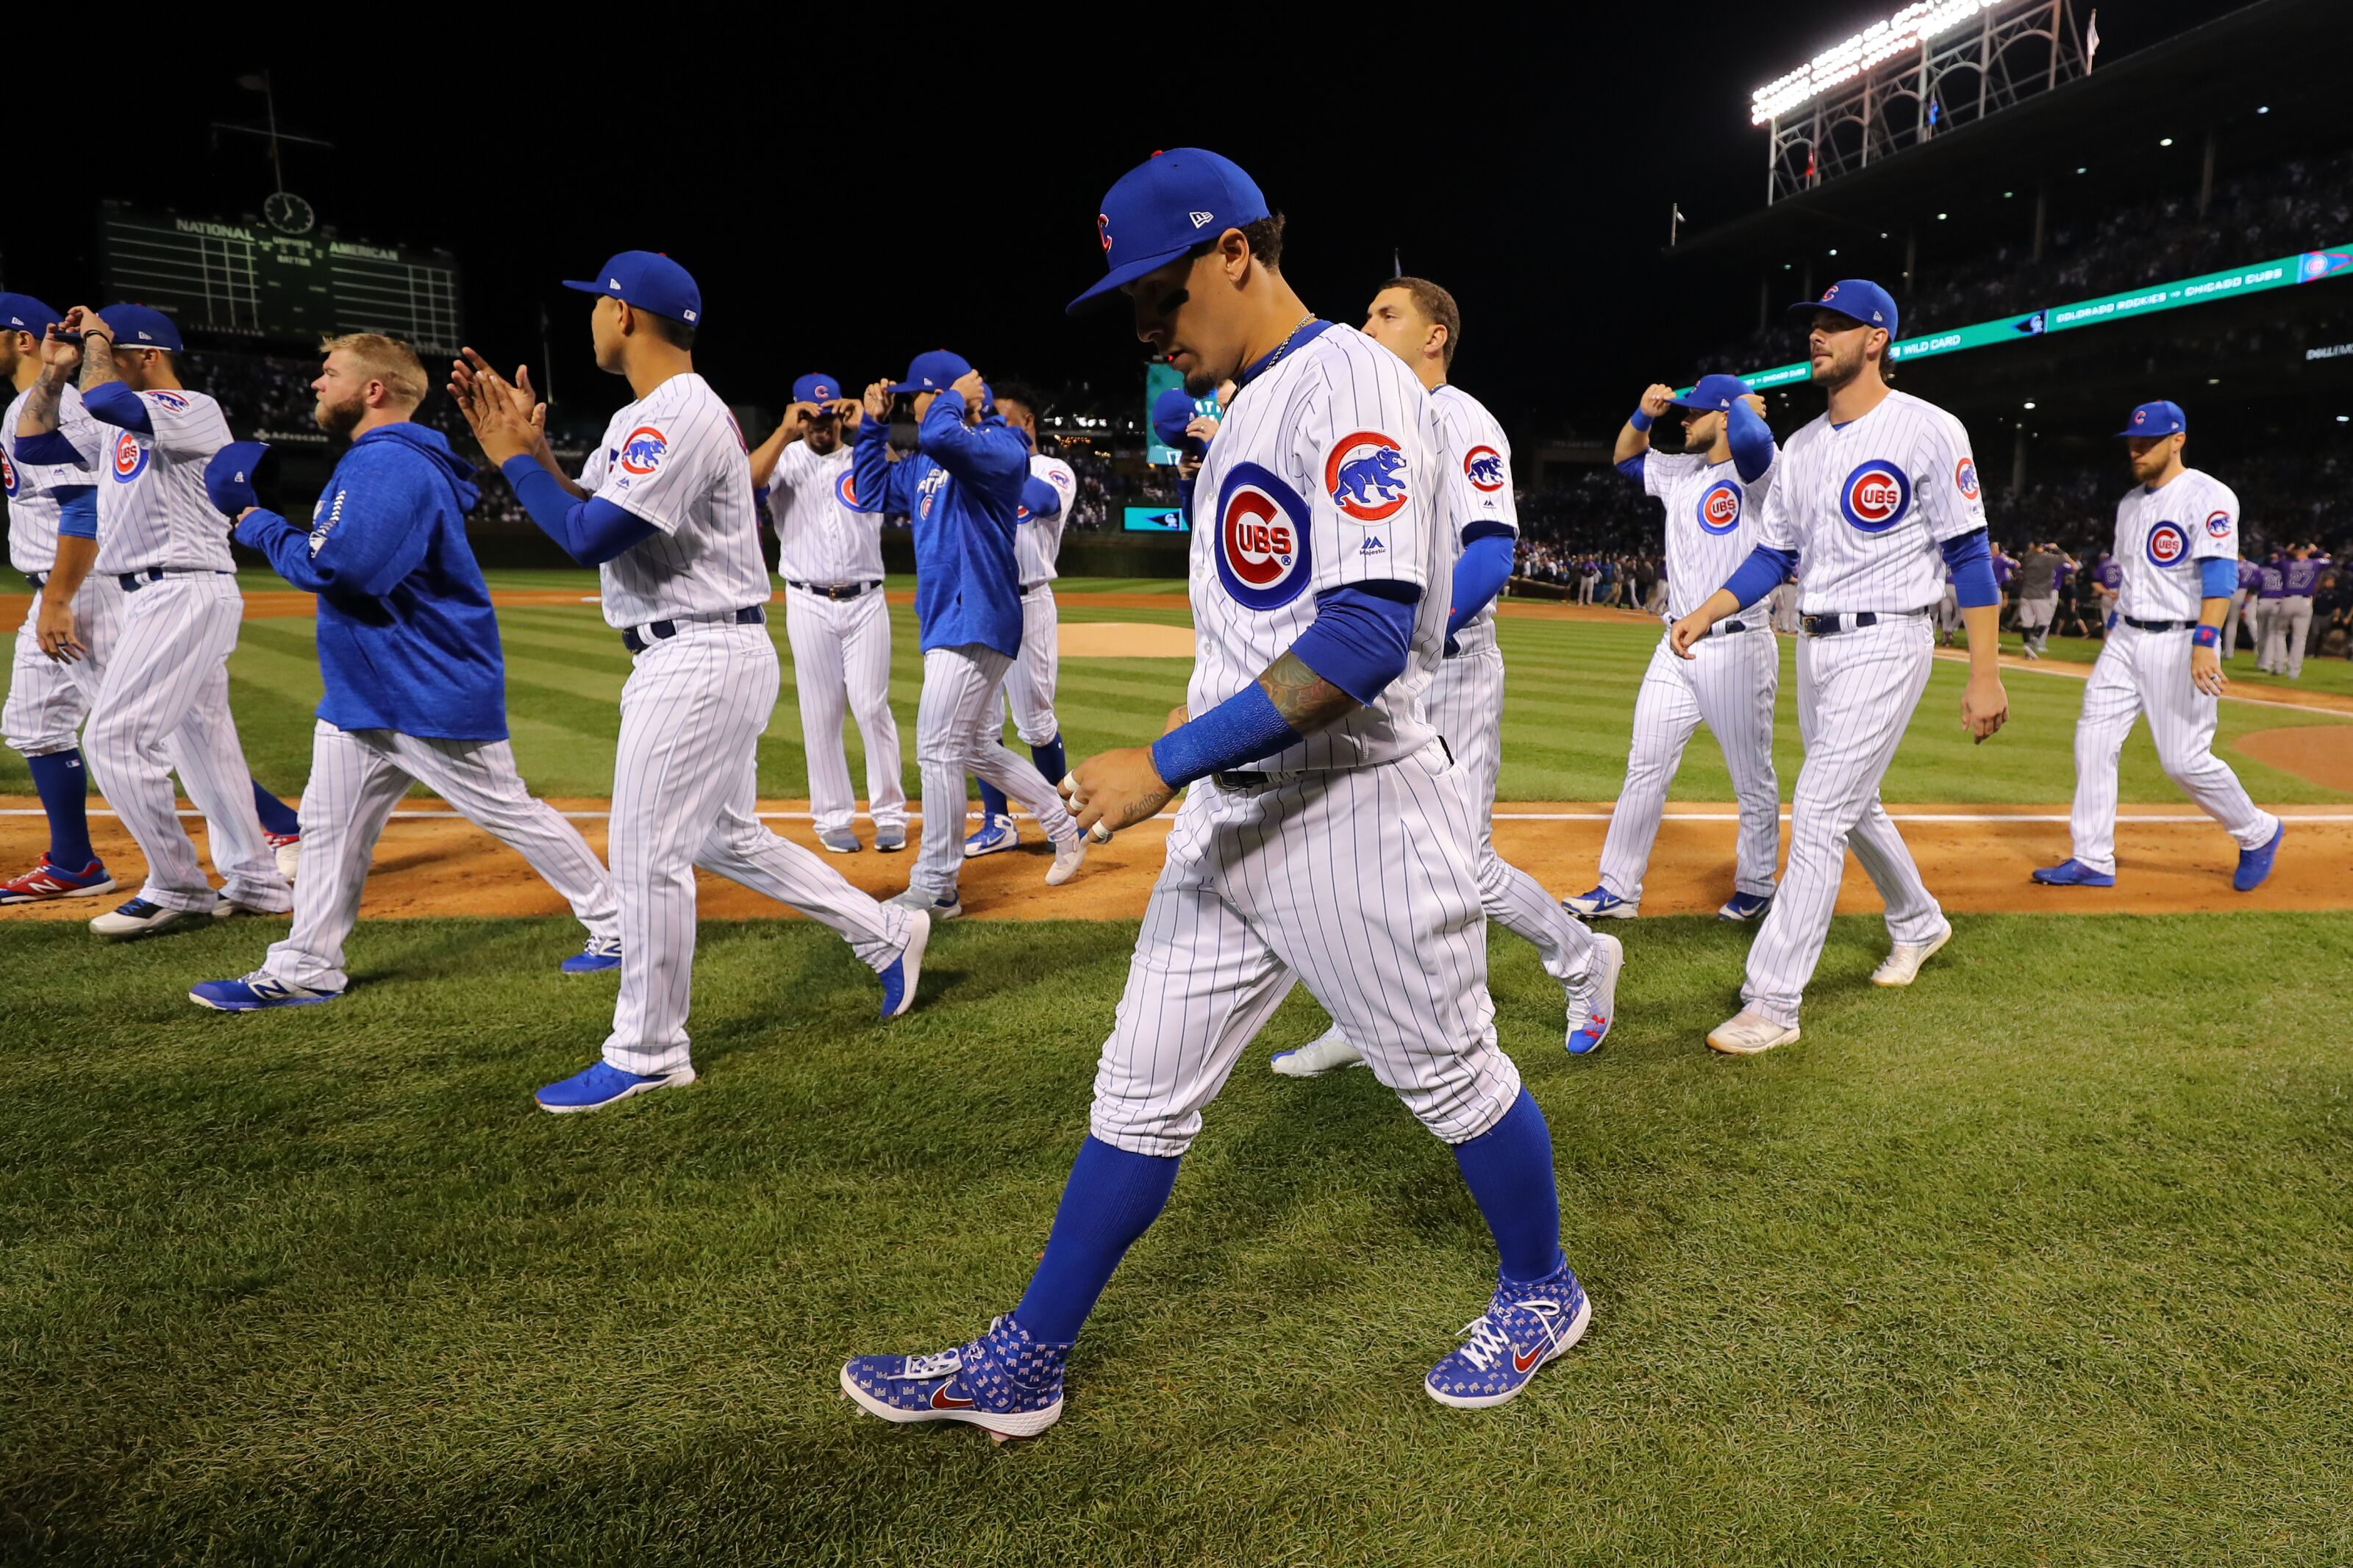 Chicago Cubs could see significant improvement from within